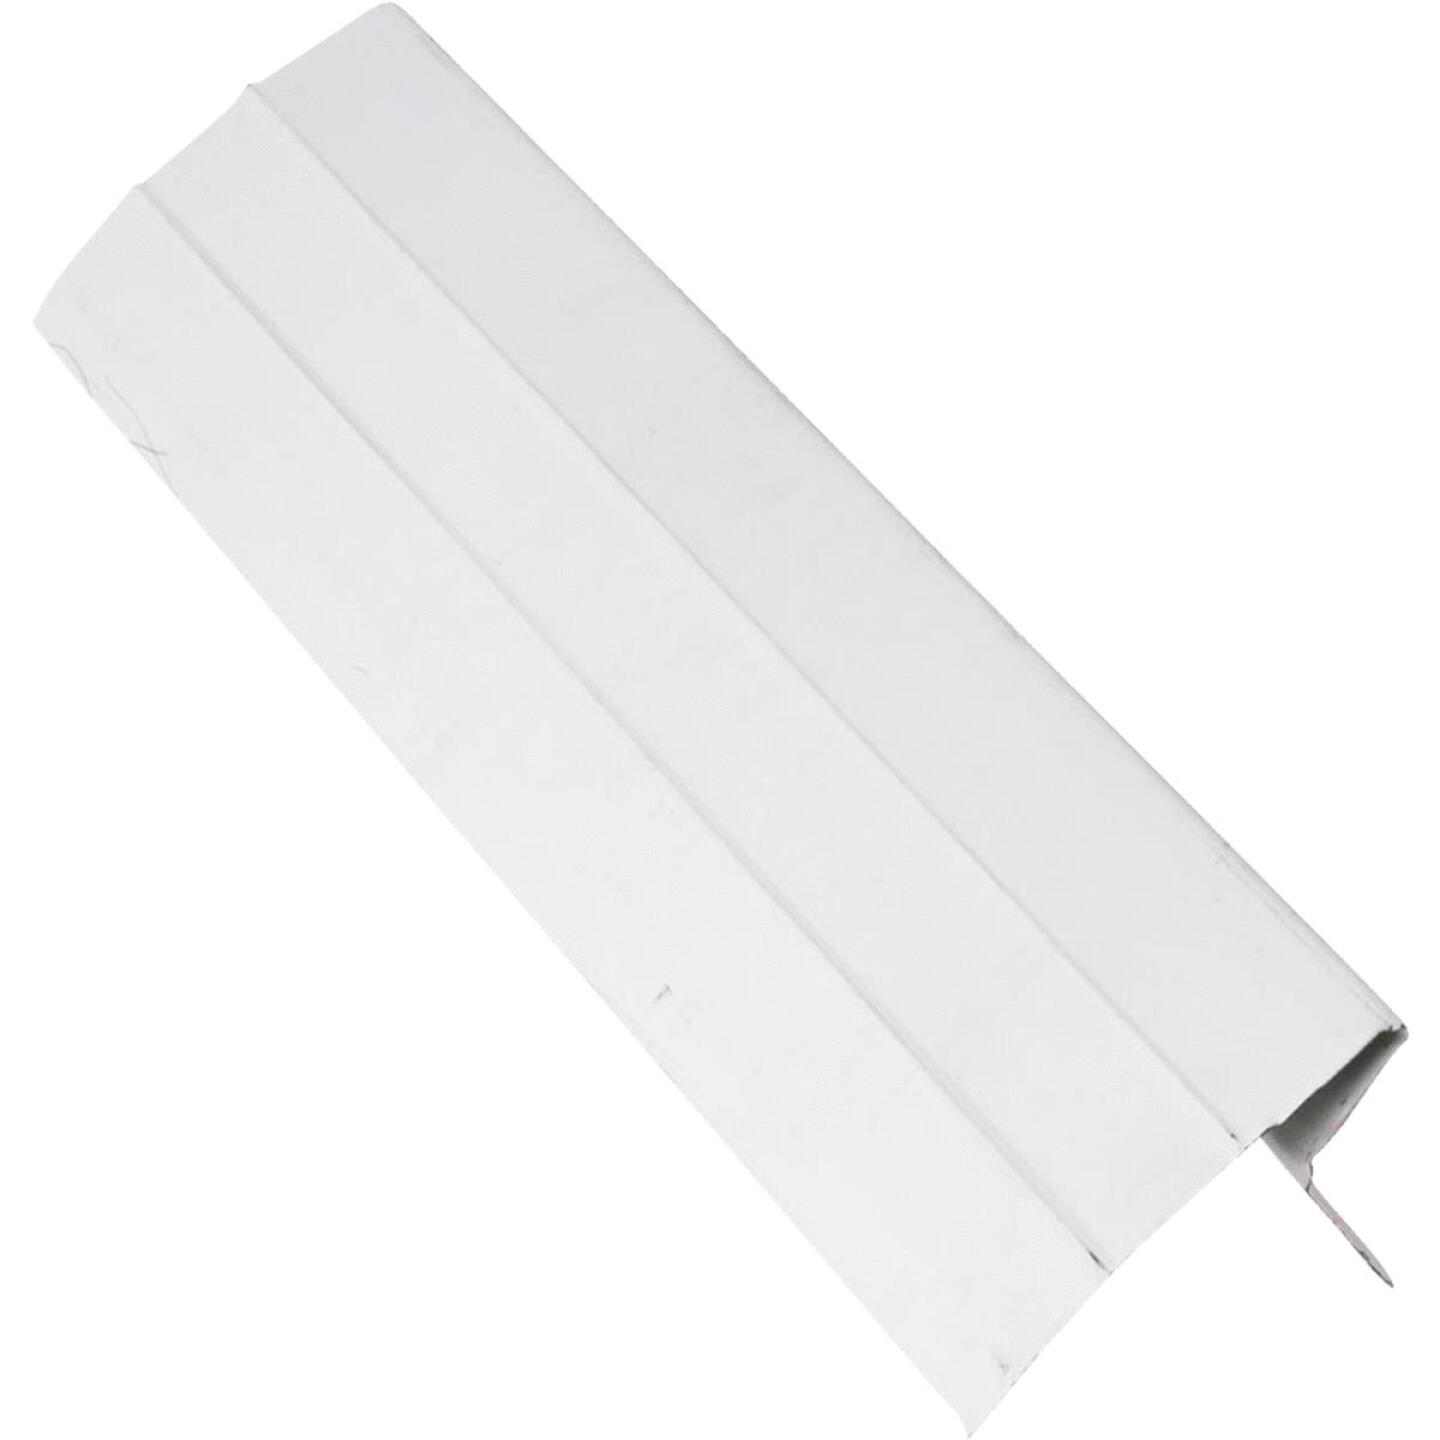 NorWesco D Galvanized Steel Roof & Drip Edge Flashing, White Image 1